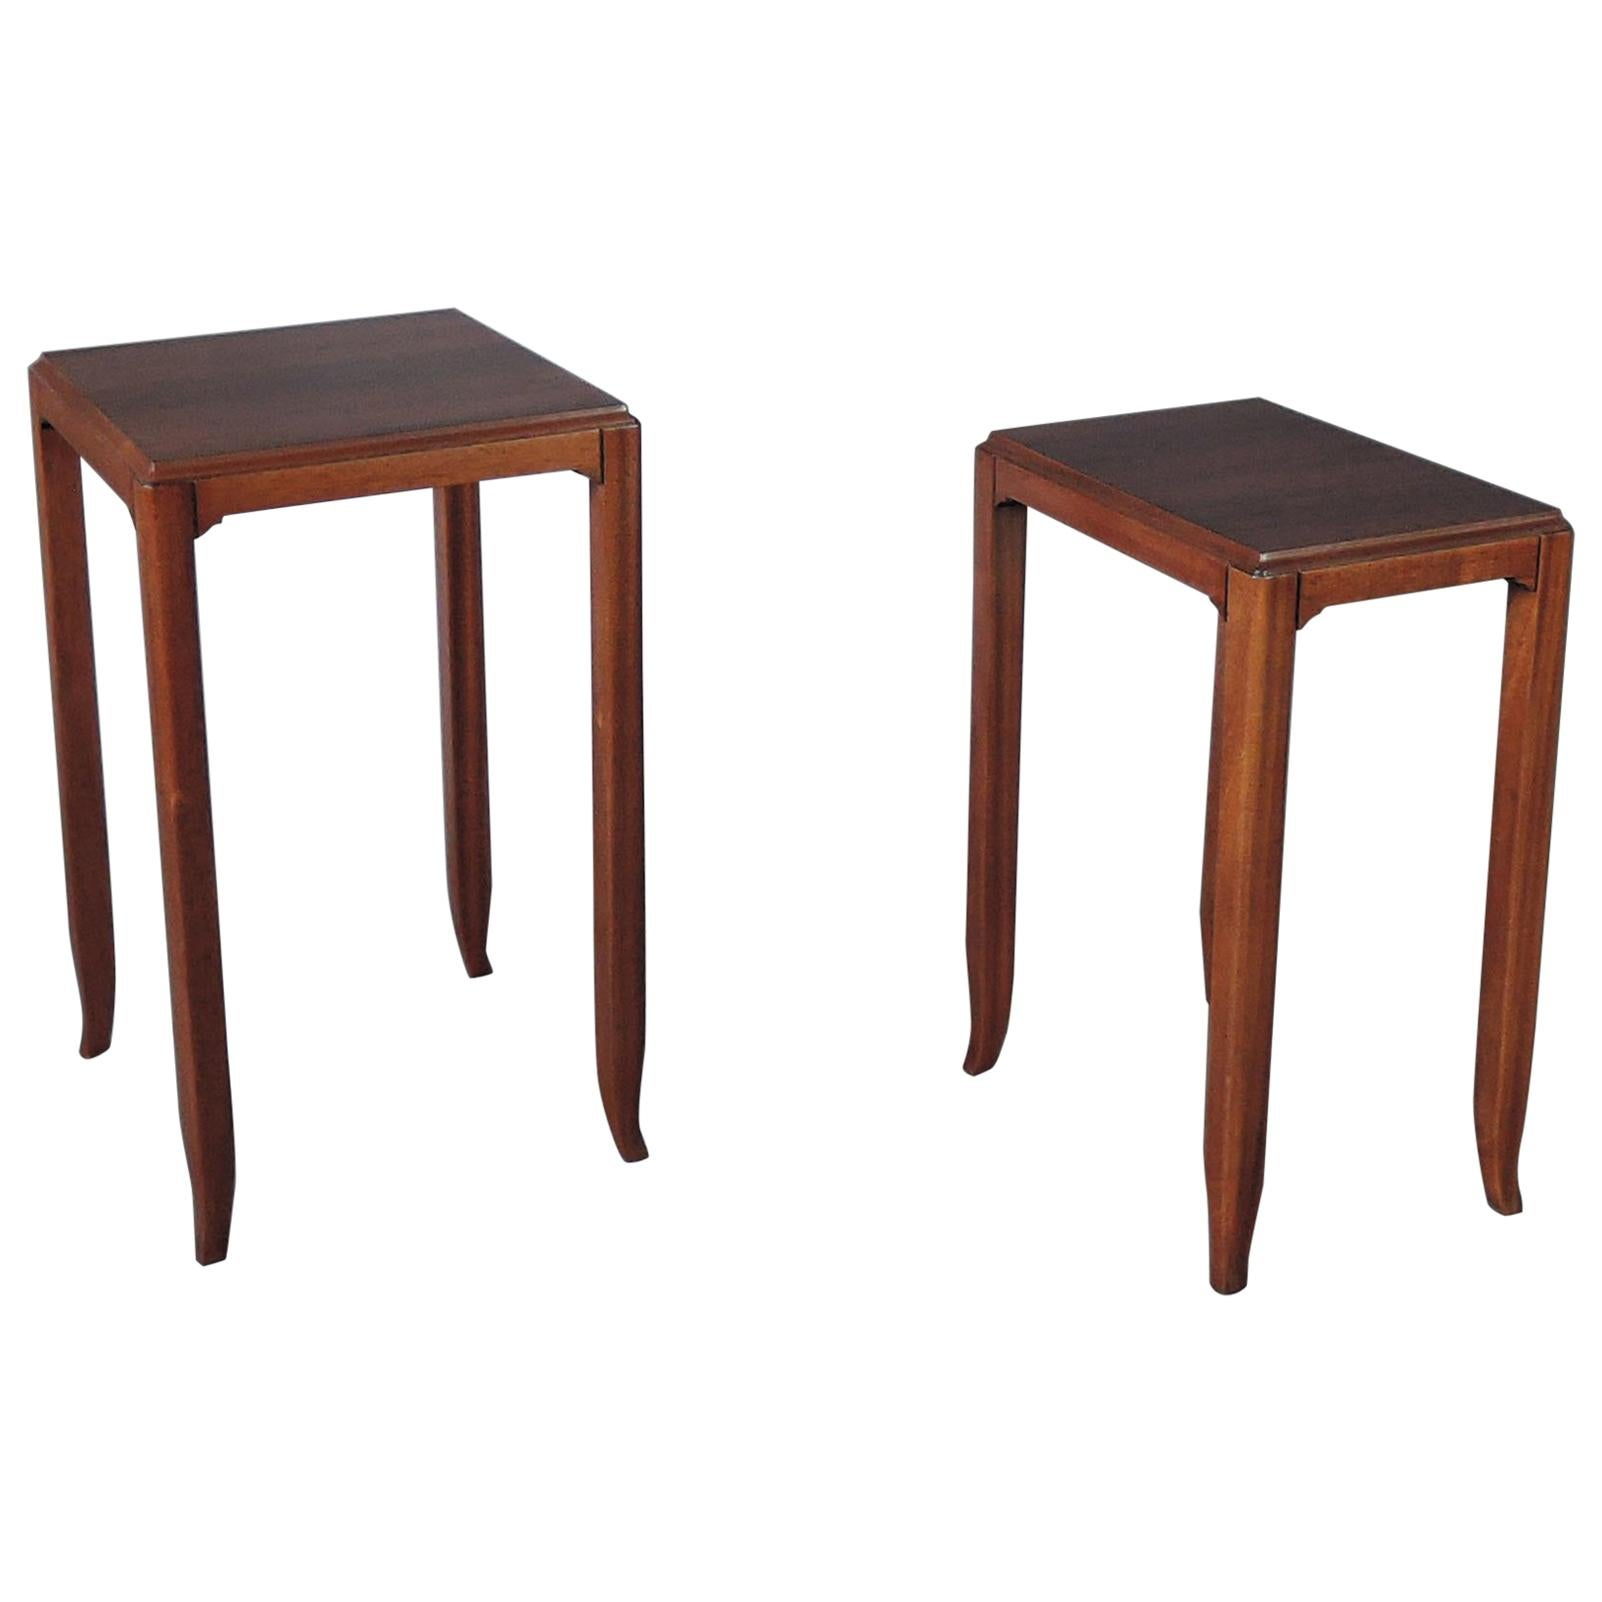 2 Fine French Art Deco Mahogany and Rosewood Side Tables by Jules Leleu